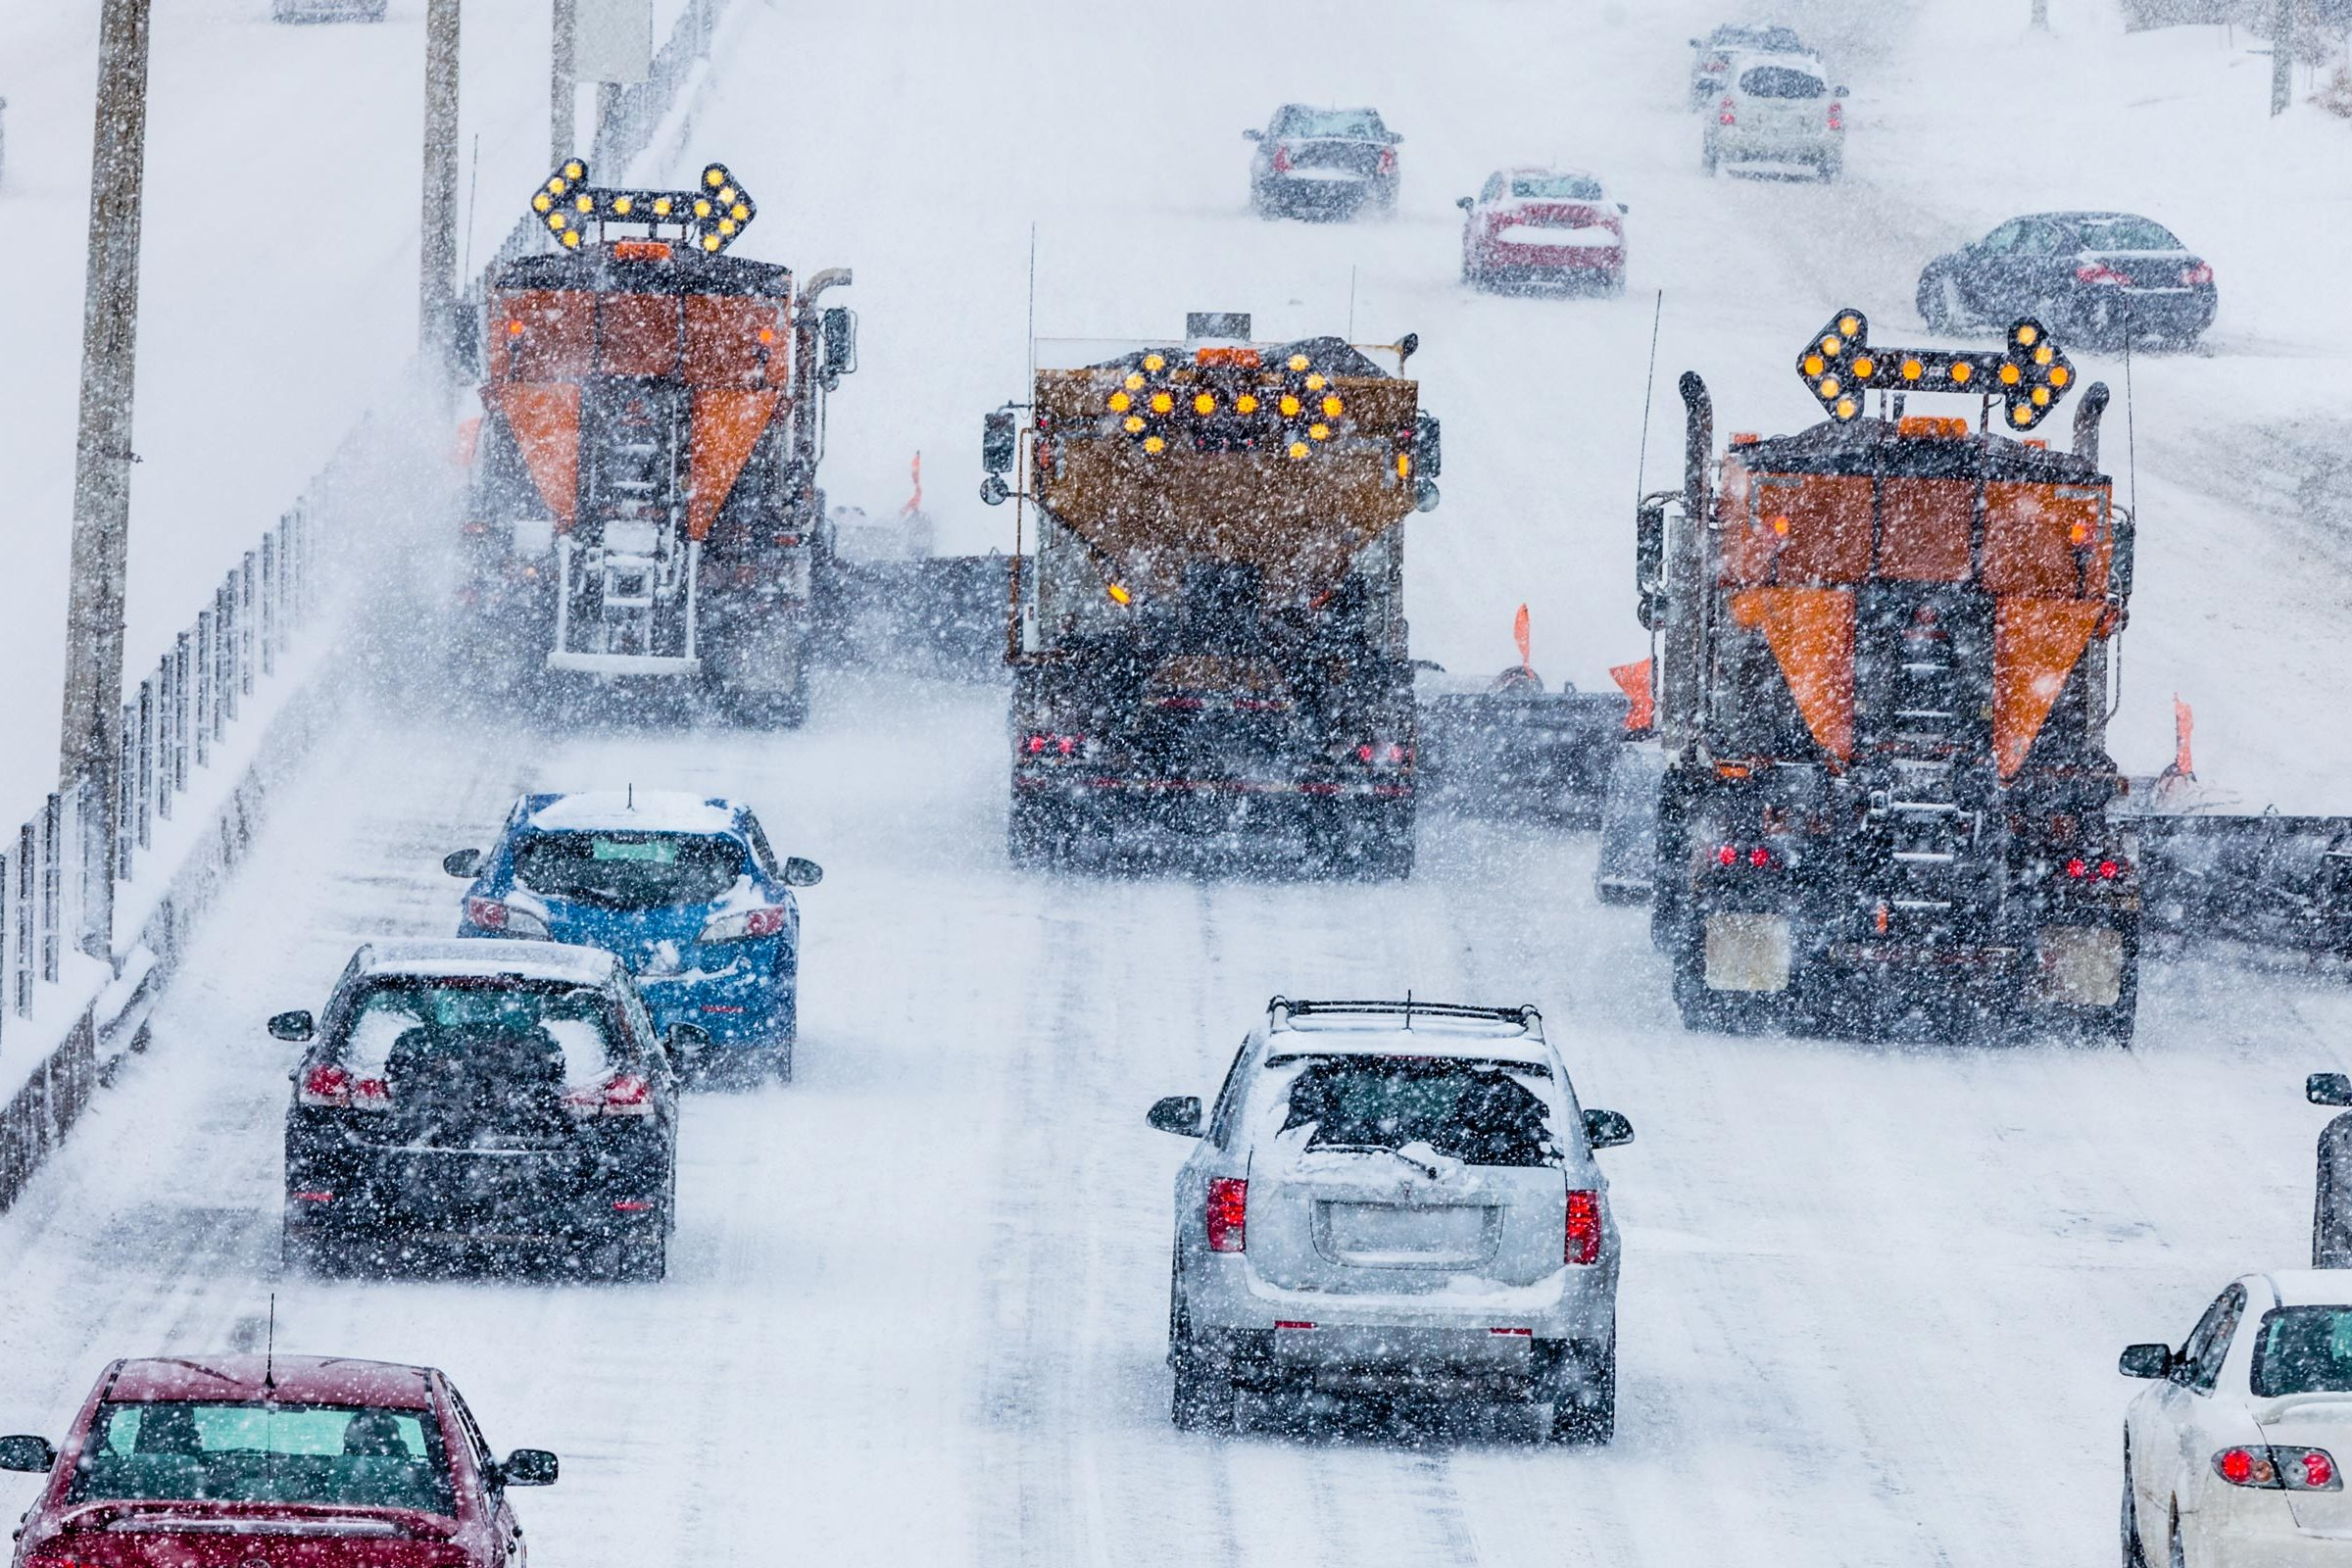 A photo of three snow plows clearing a busy highway of snow